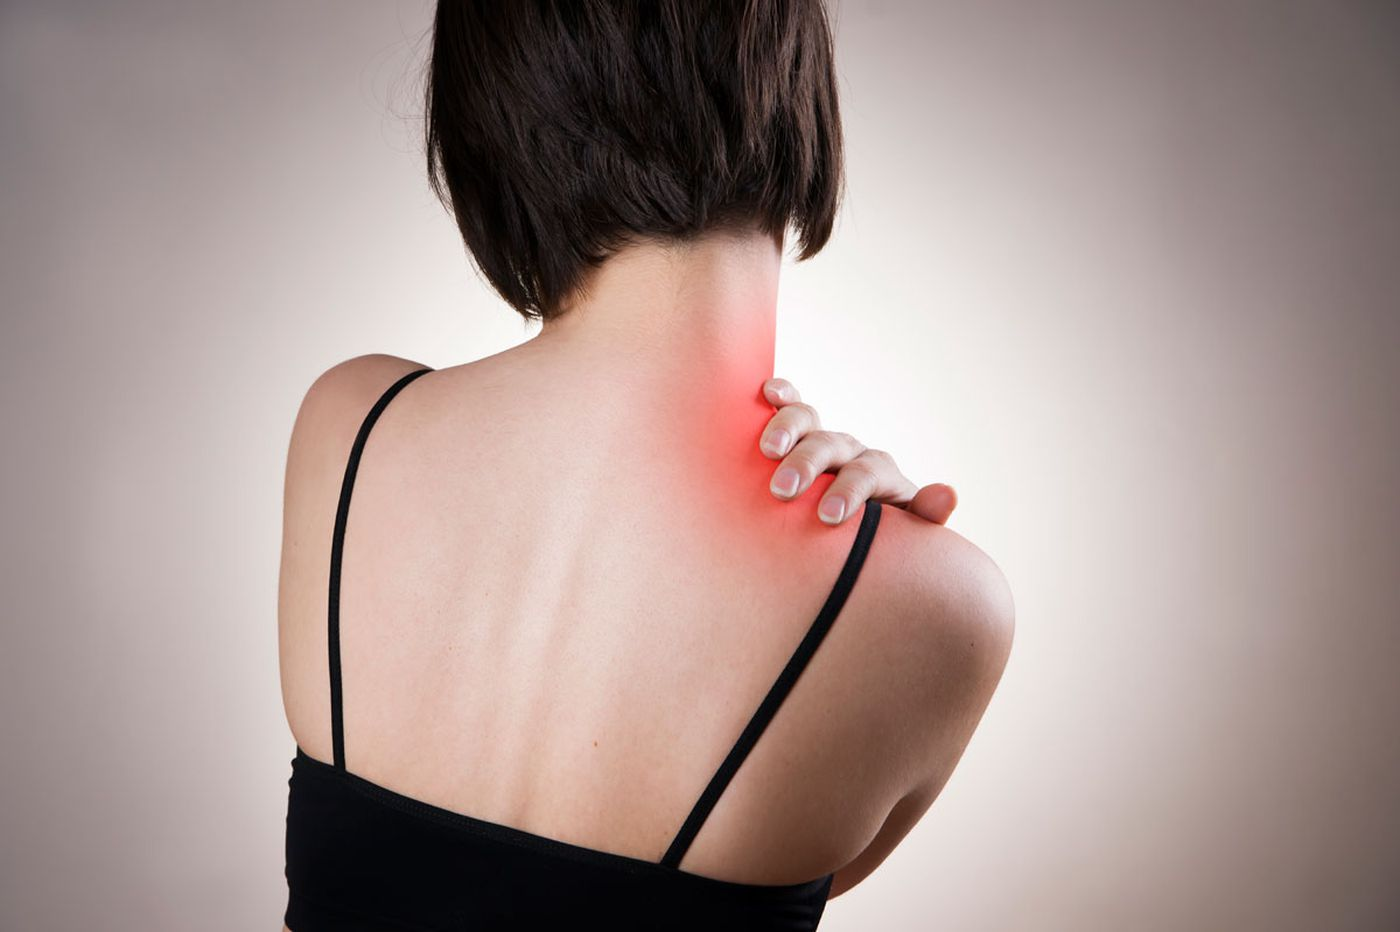 What caused pain in woman's shoulder?